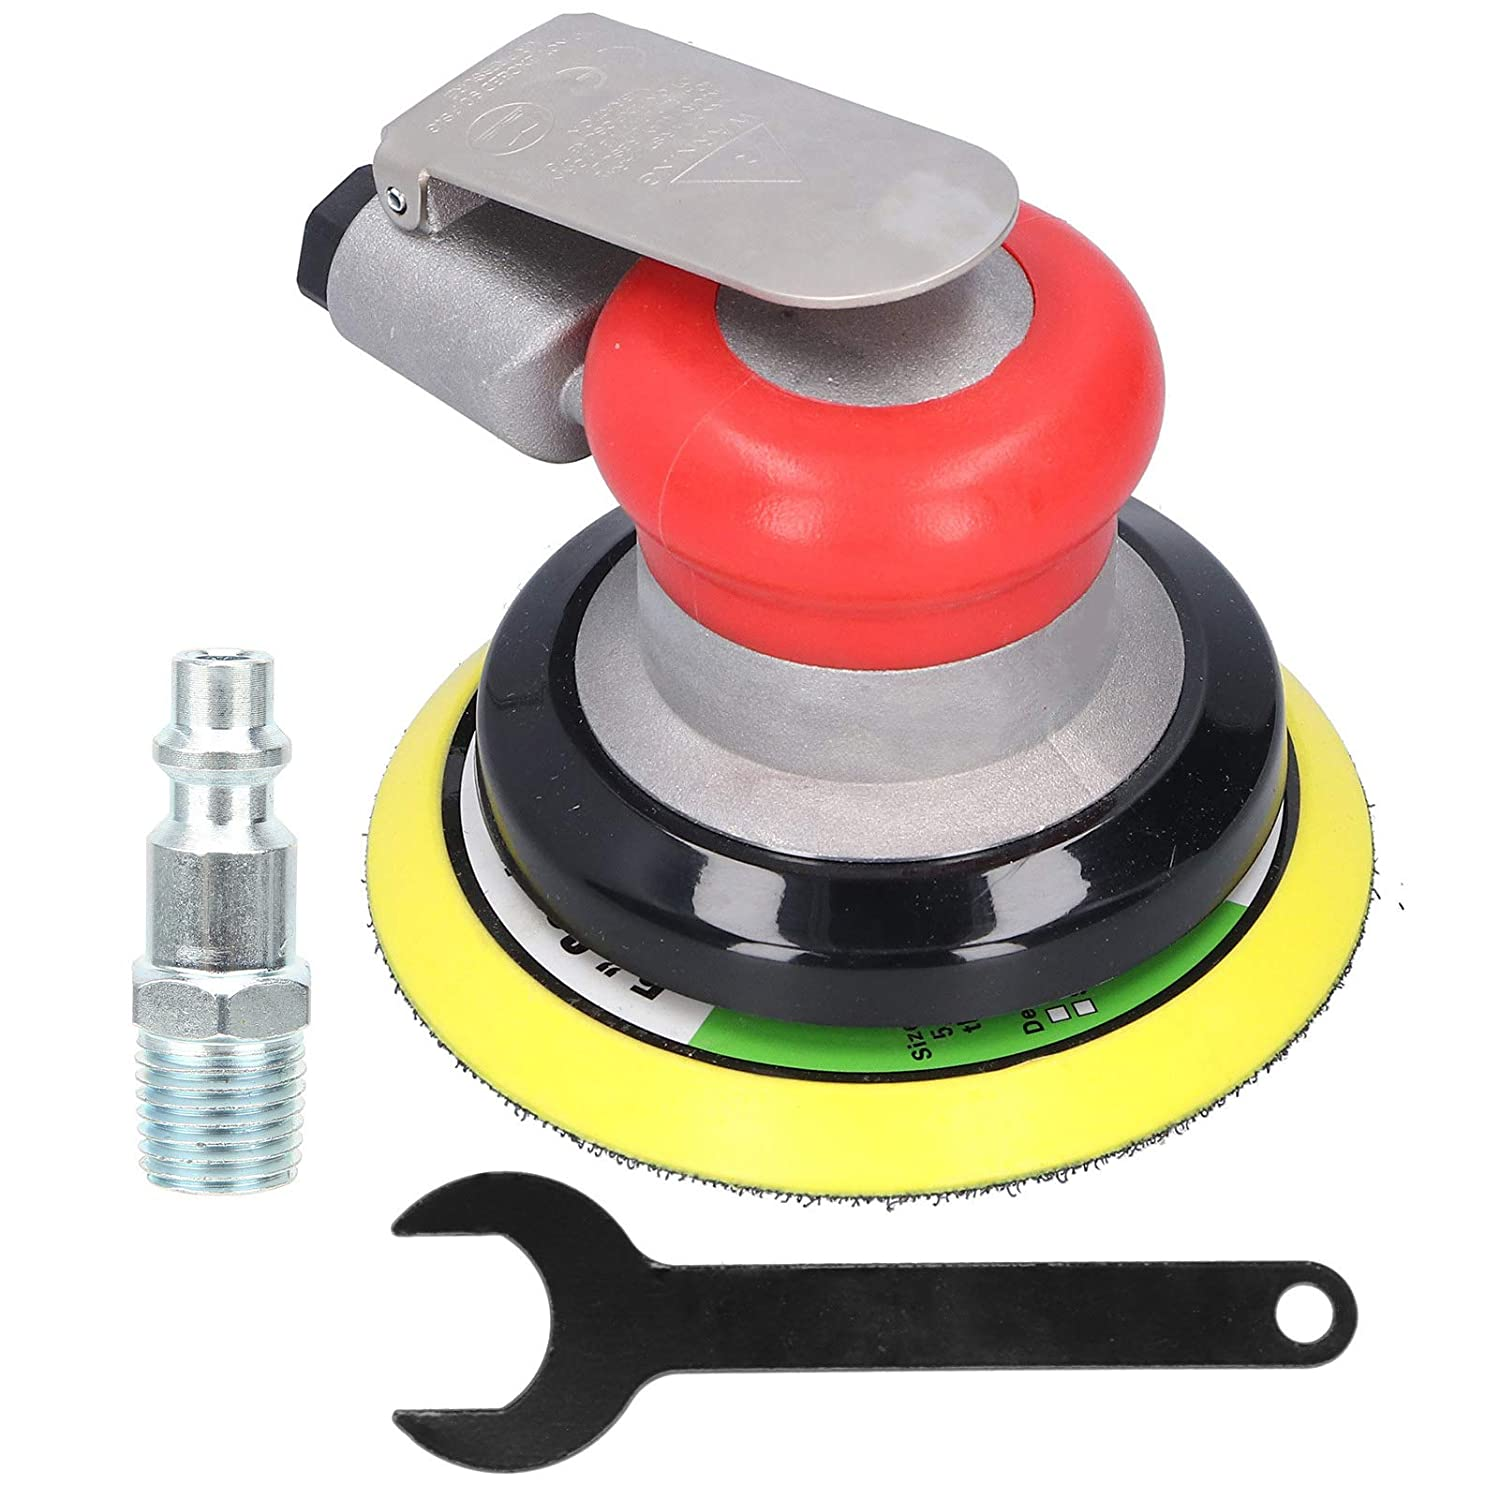 sold out Pneumatic Sanding Special price for a limited time Machine Waxer for Polisher Ceramic Remov